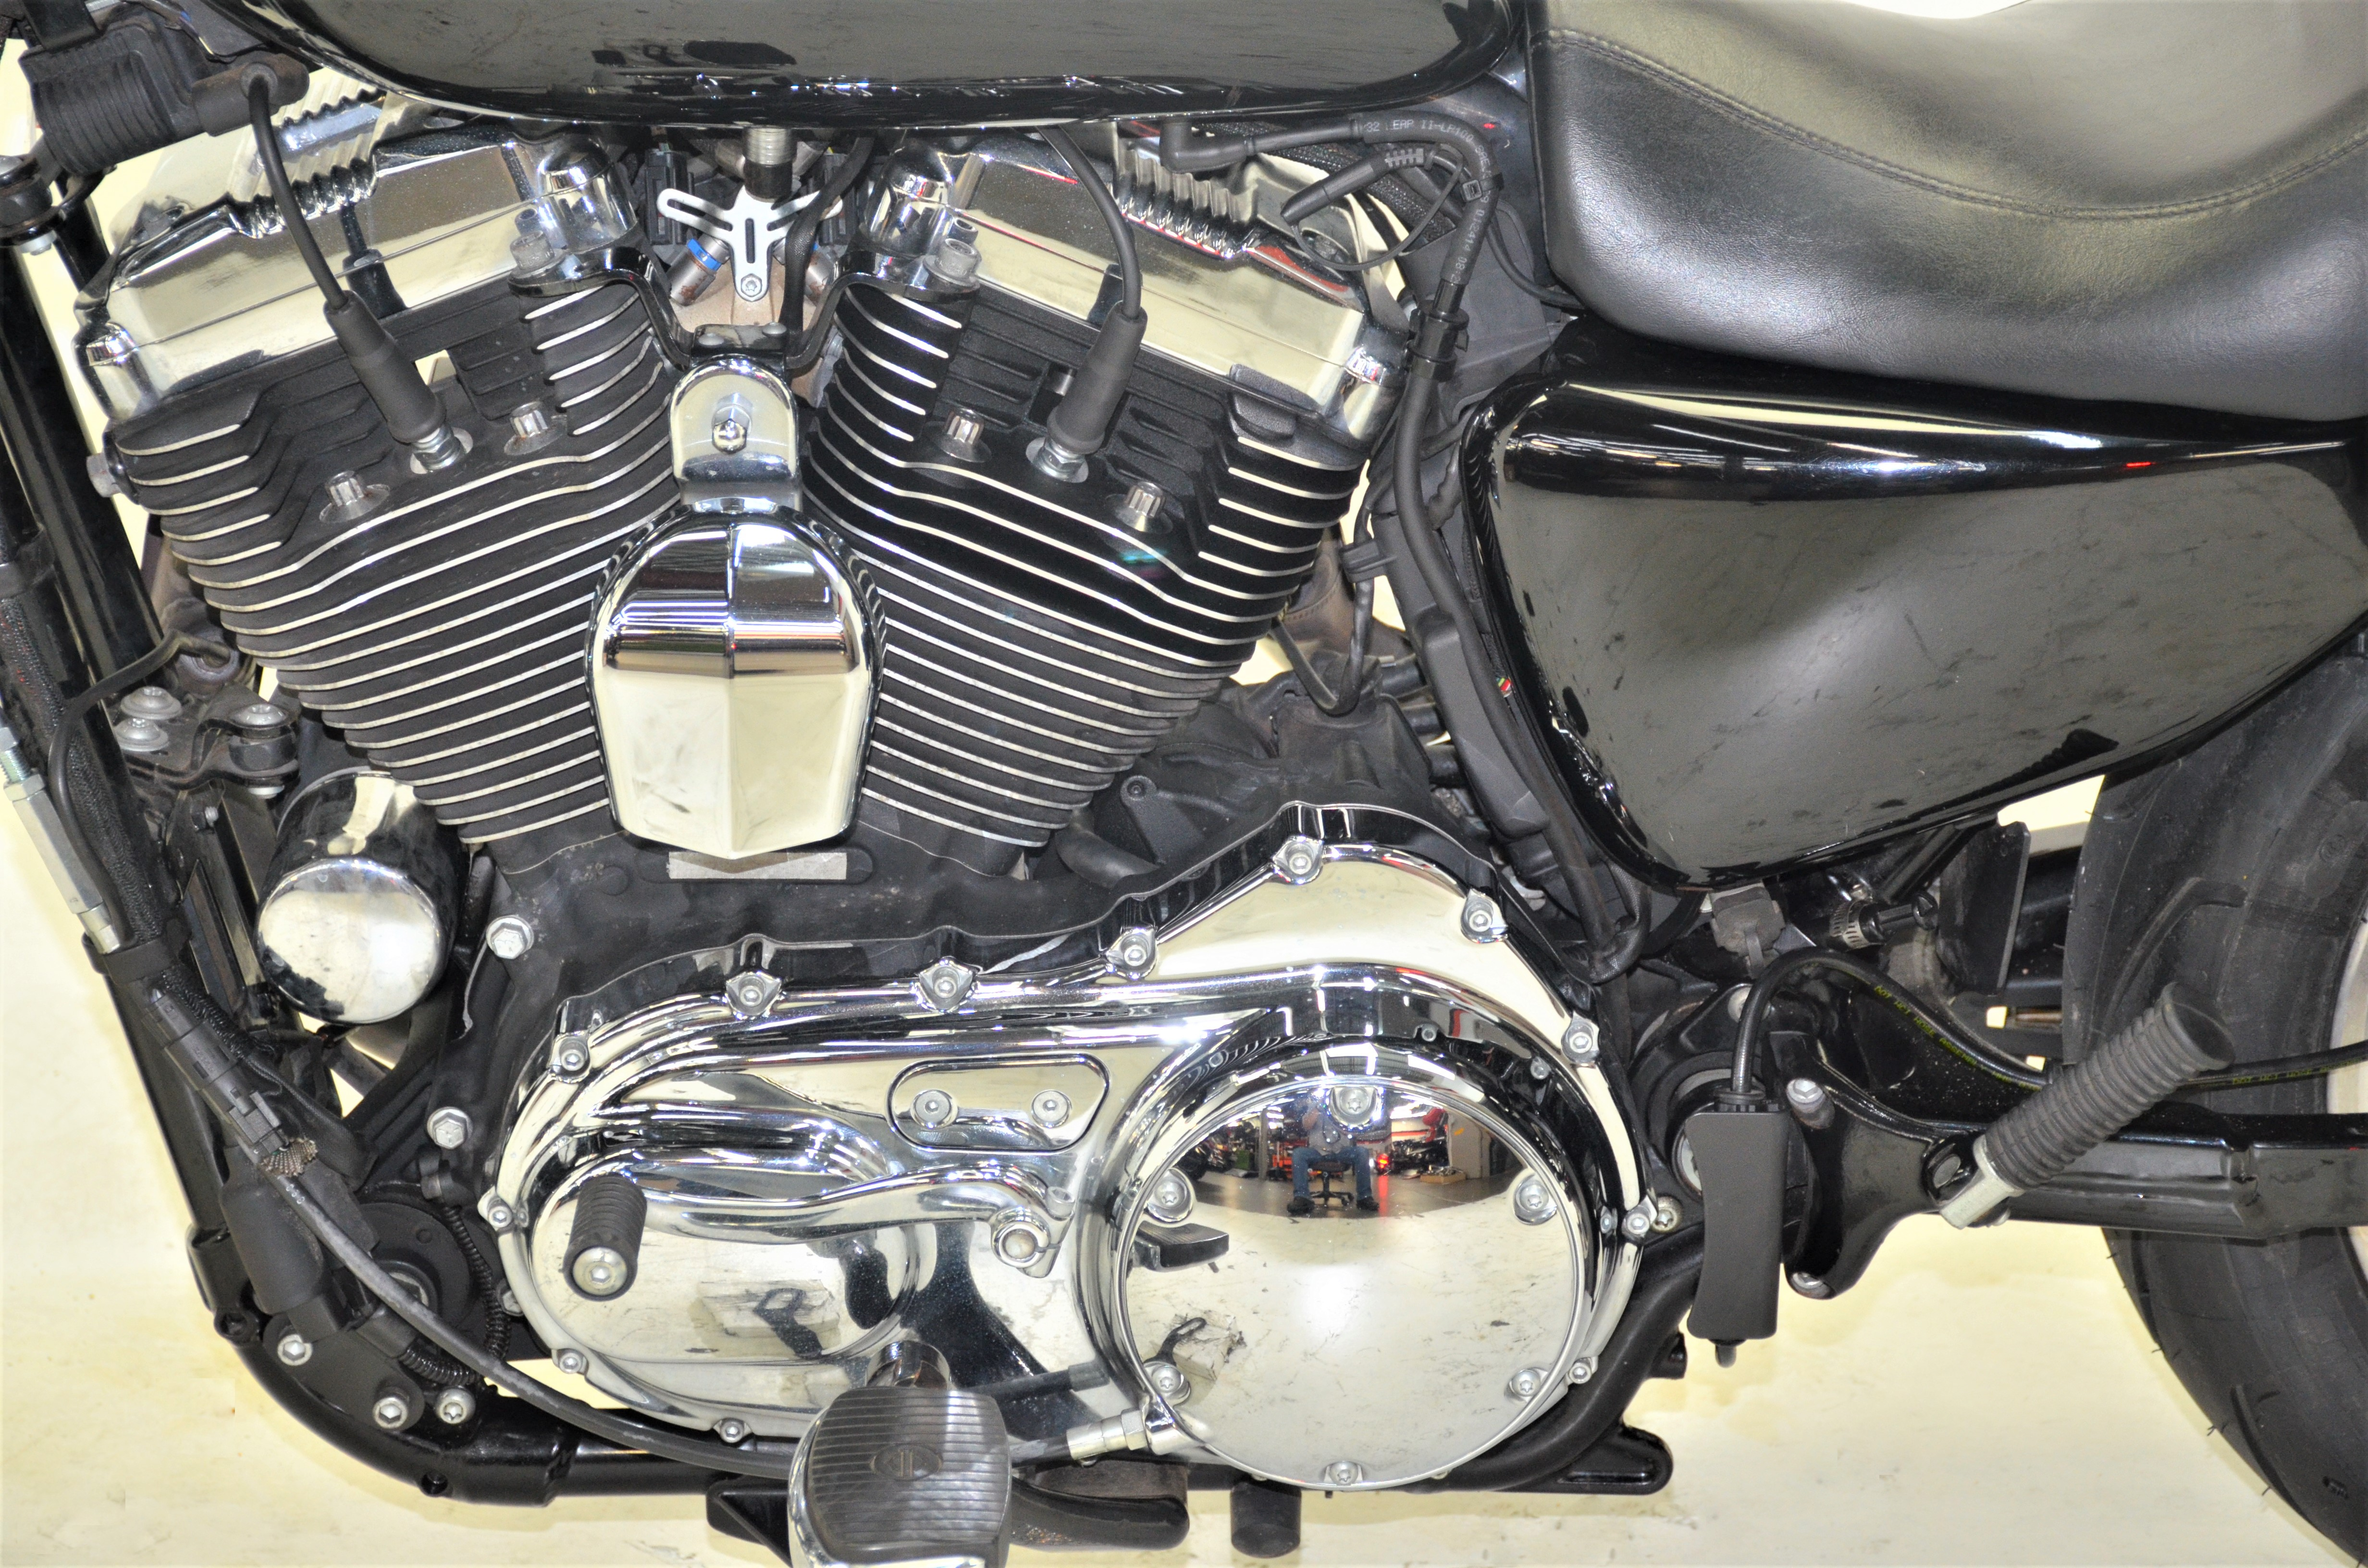 Pre-Owned 2014 Harley-Davidson SuperLow 1200T